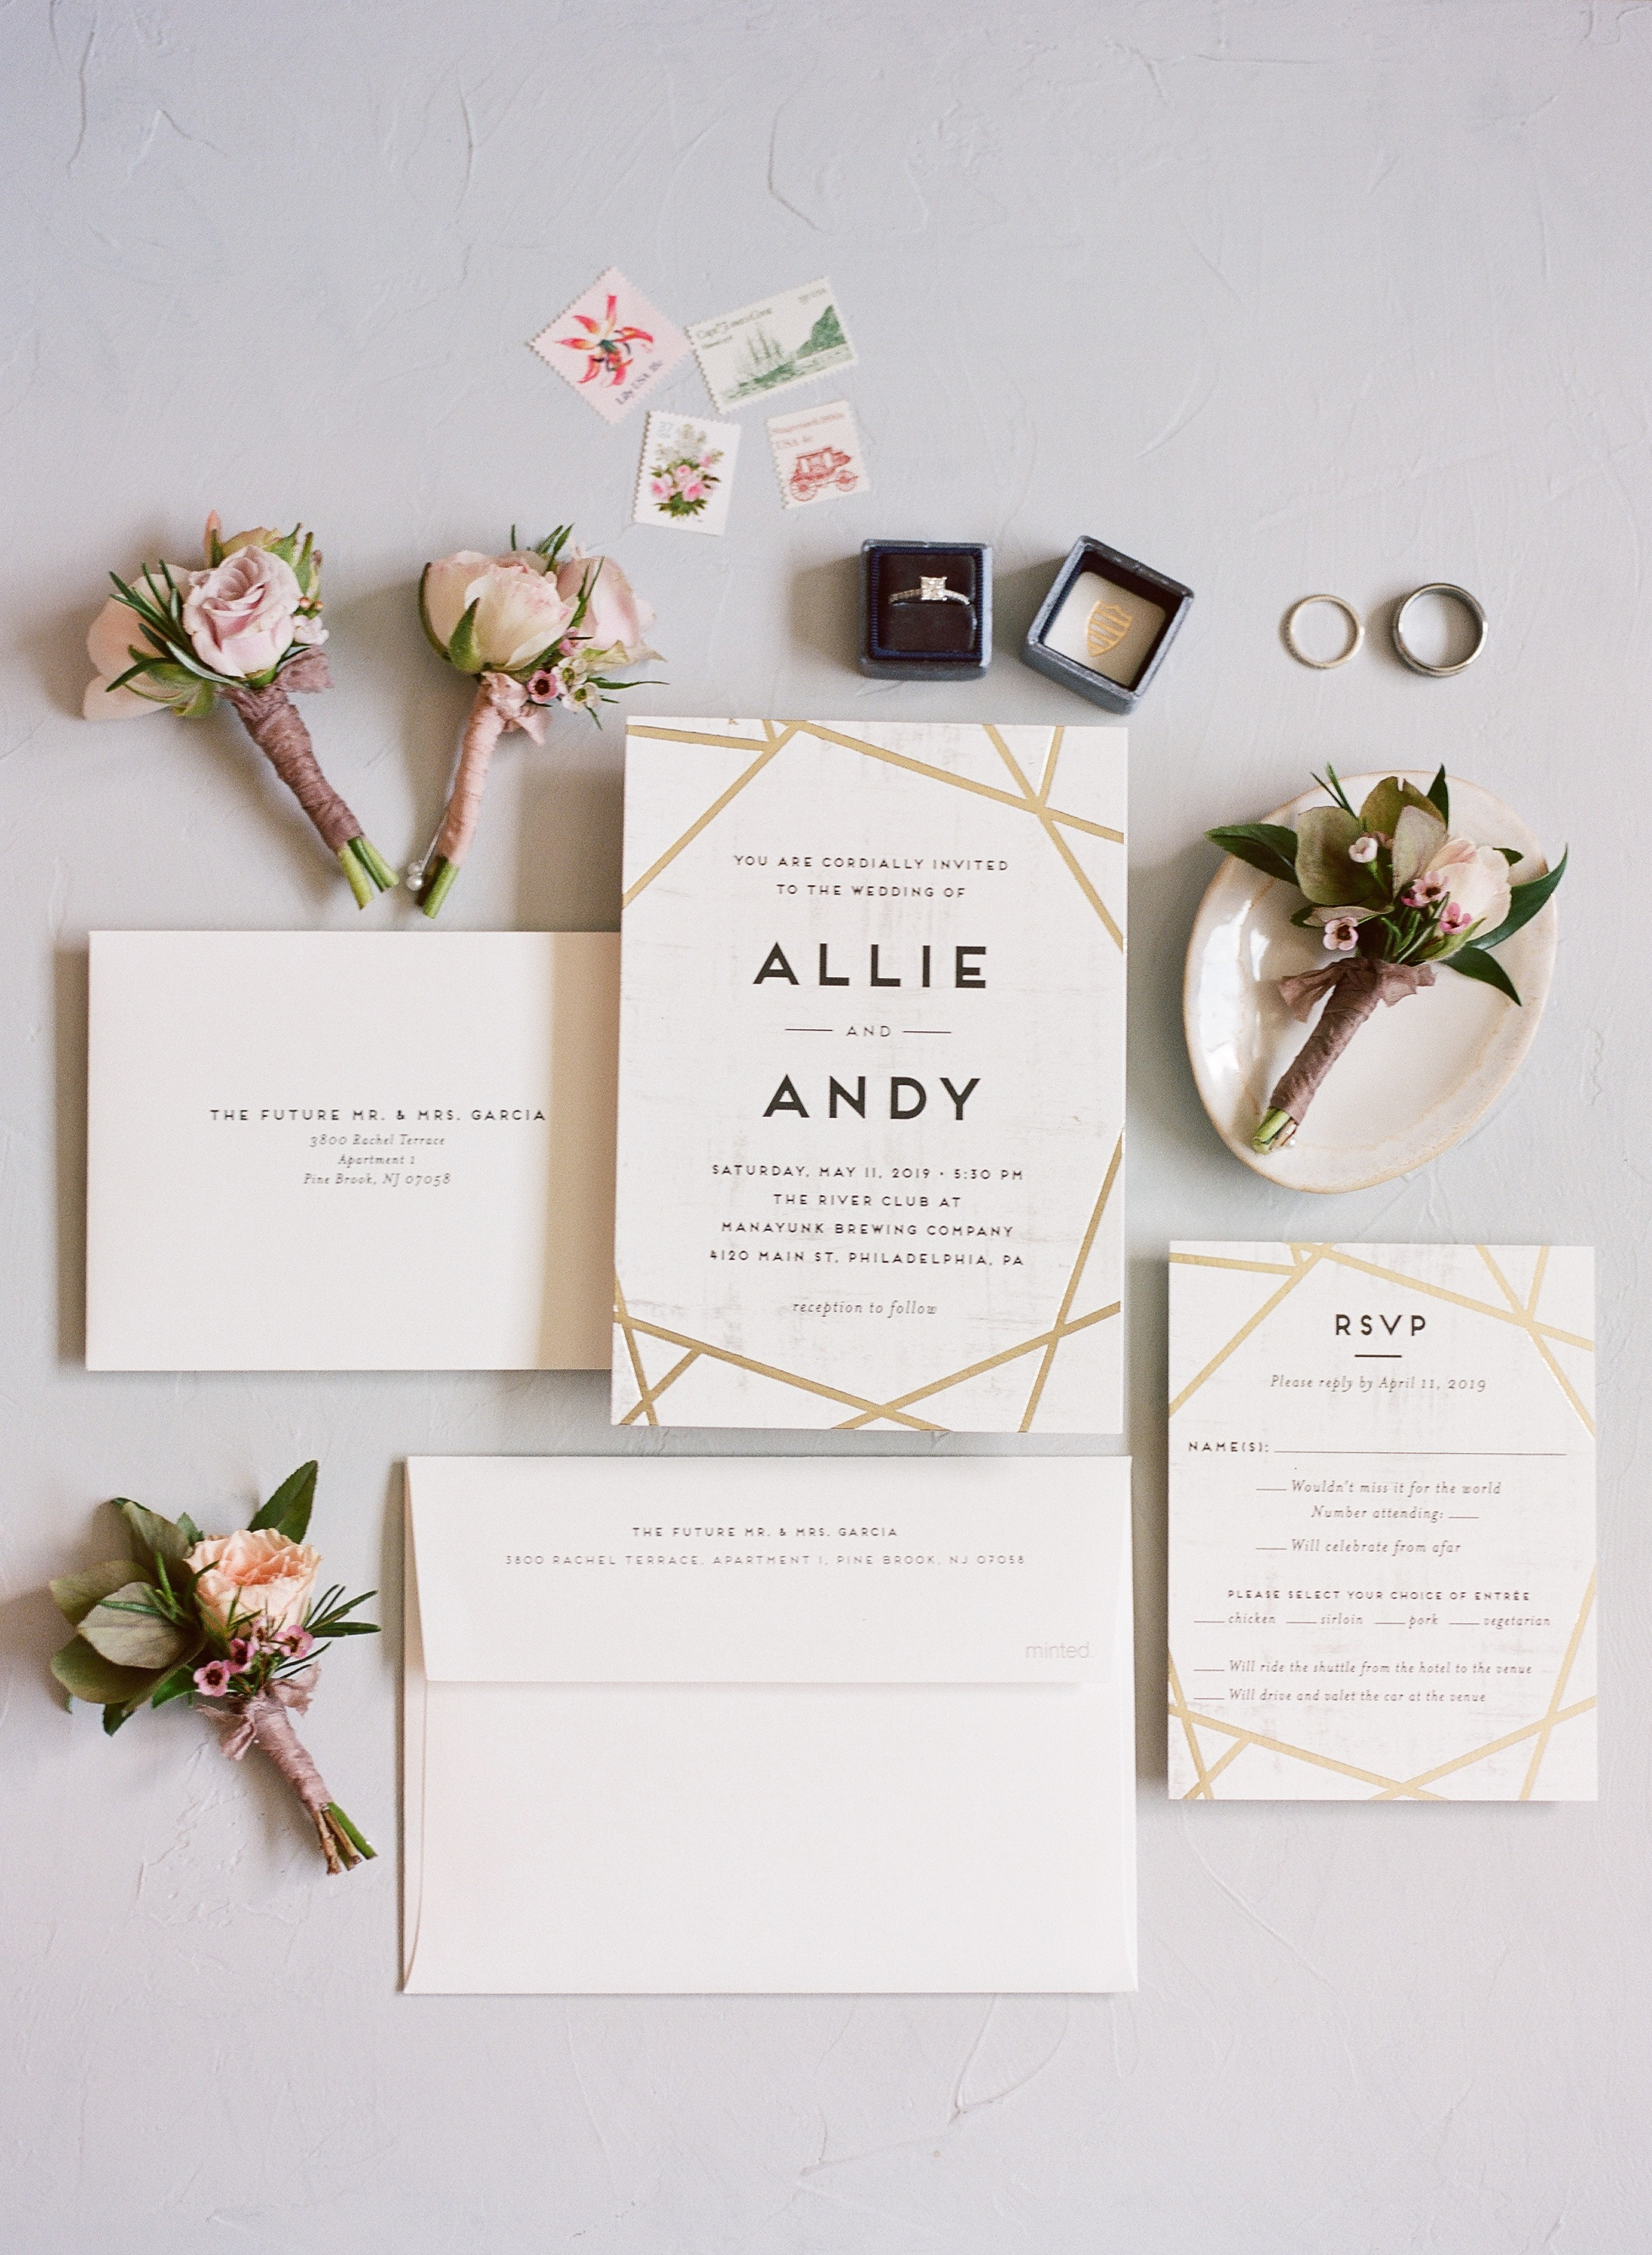 WEDDING INVITATION BY MINTED